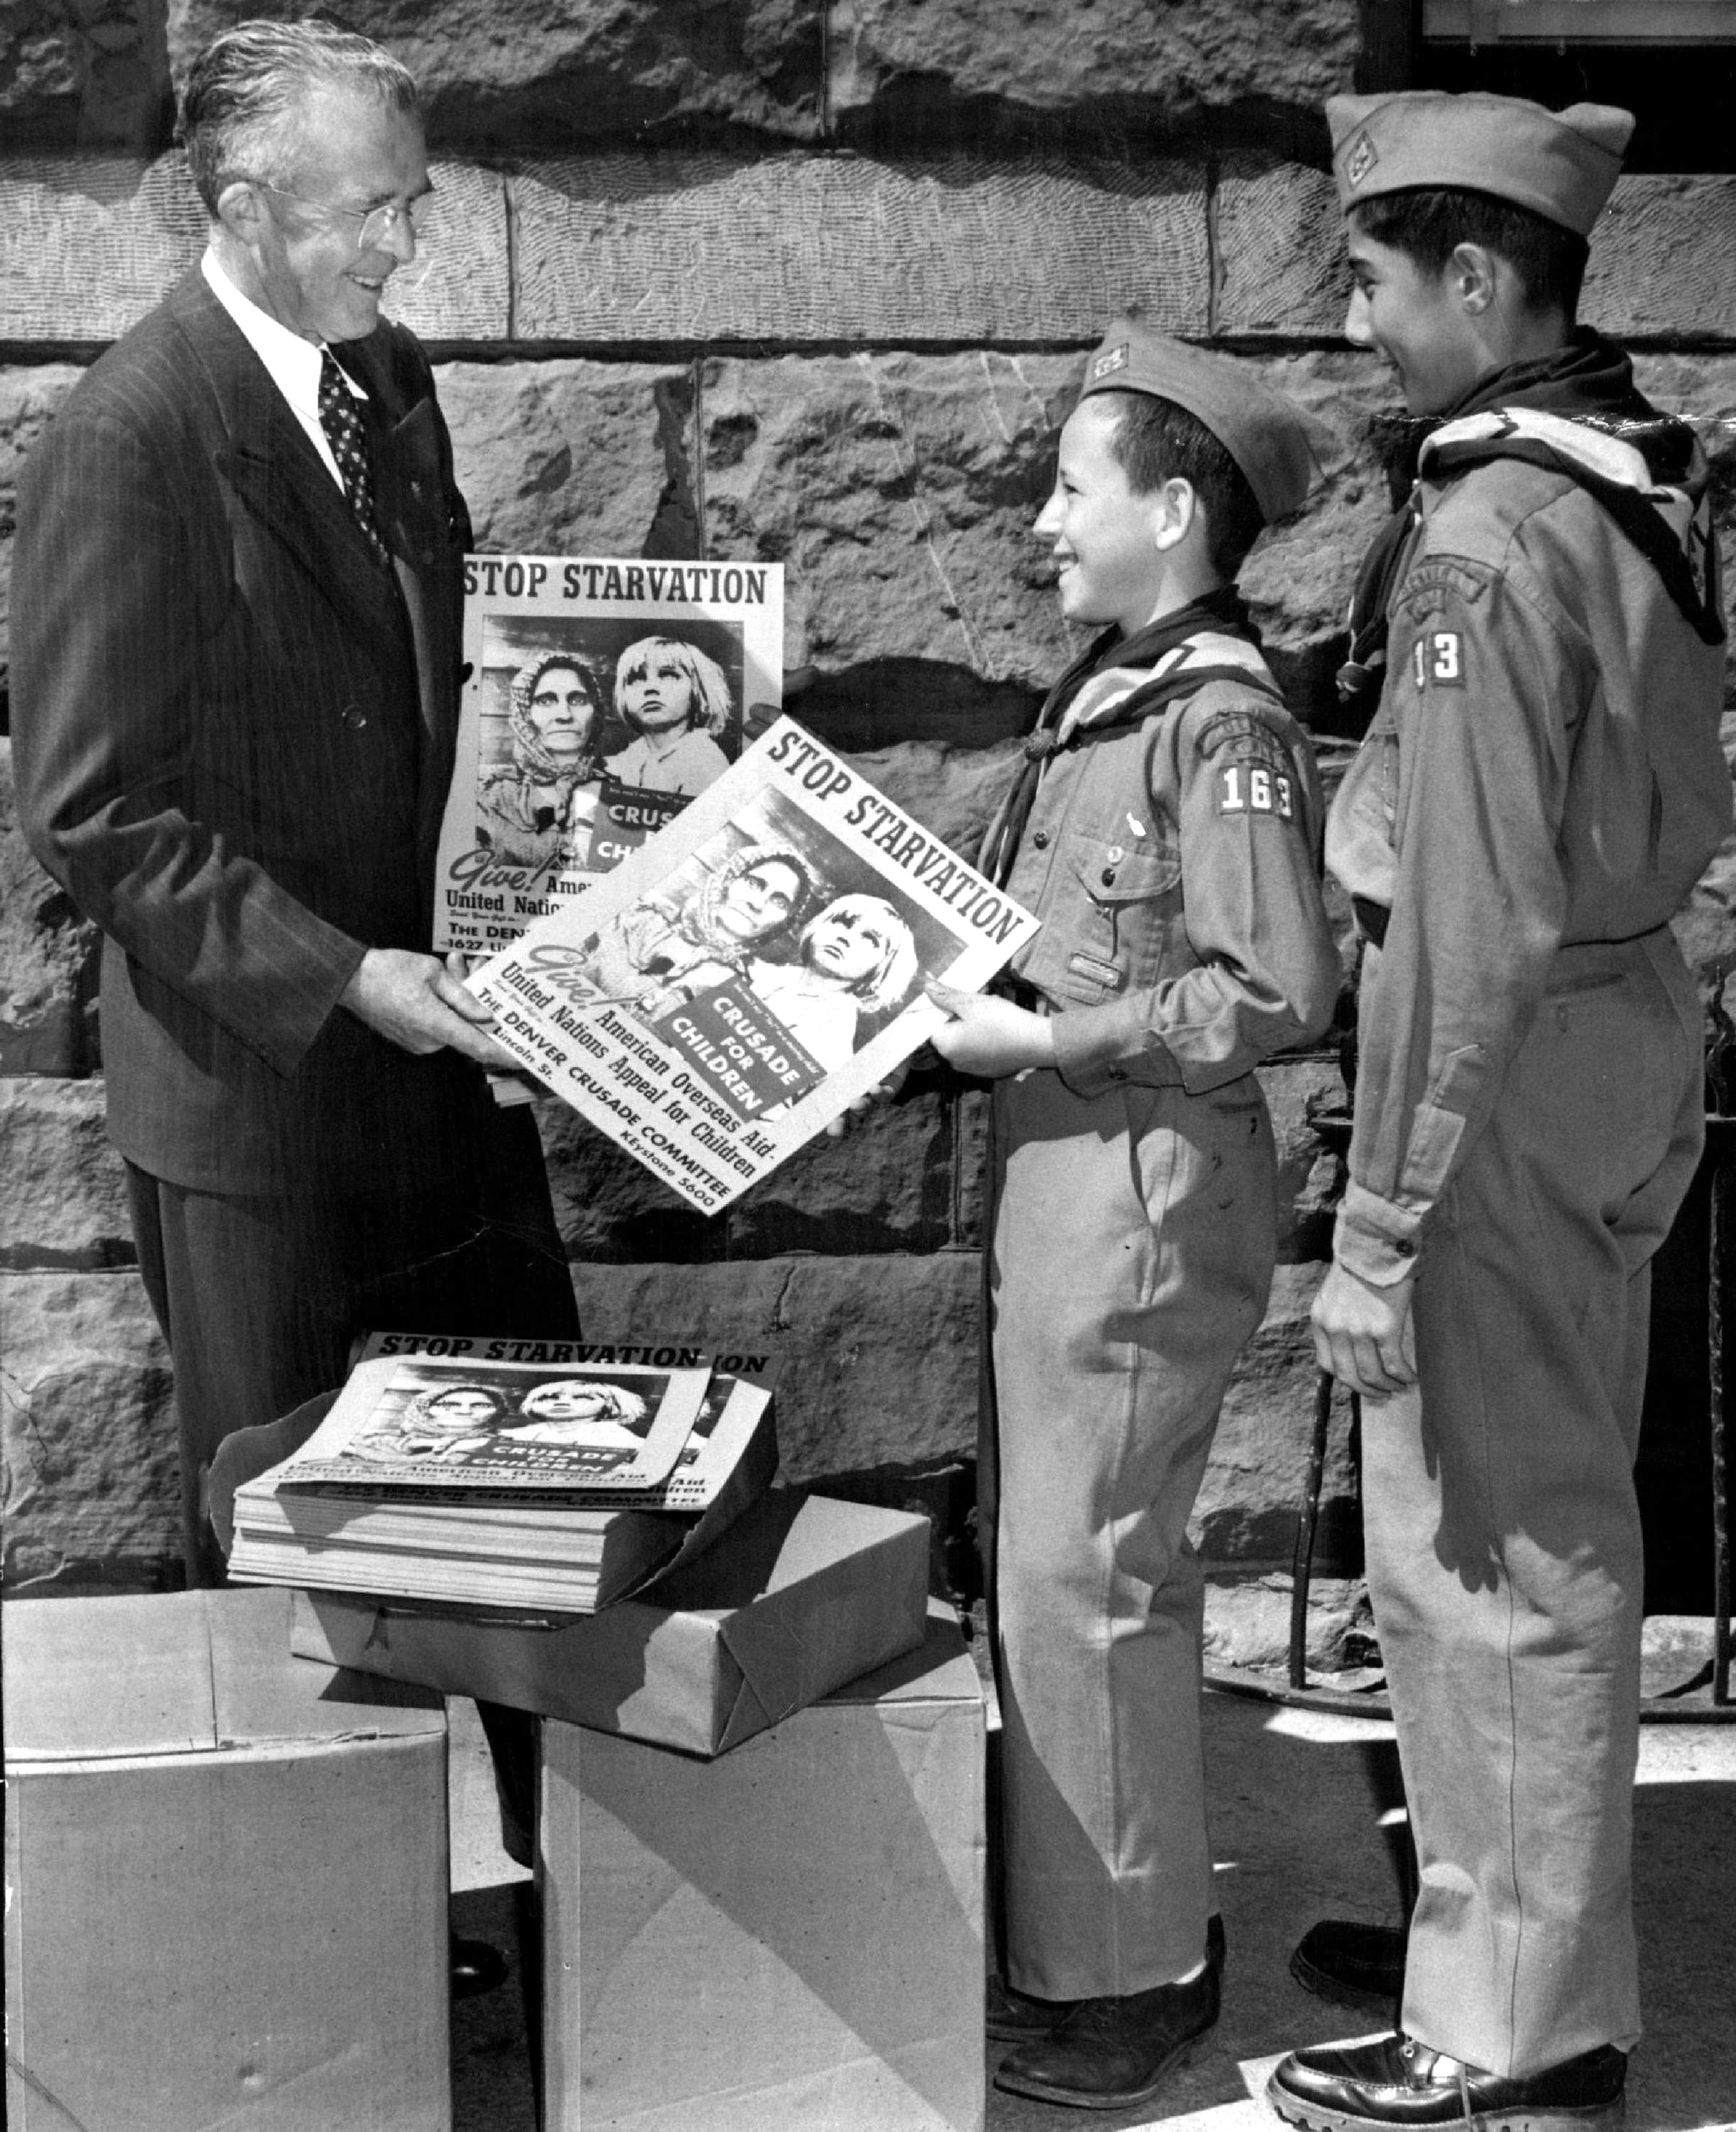 Denver Boy Scouts distributing posters to push campaign for aid to 230 million overseas children in desperate need of help. 1948.